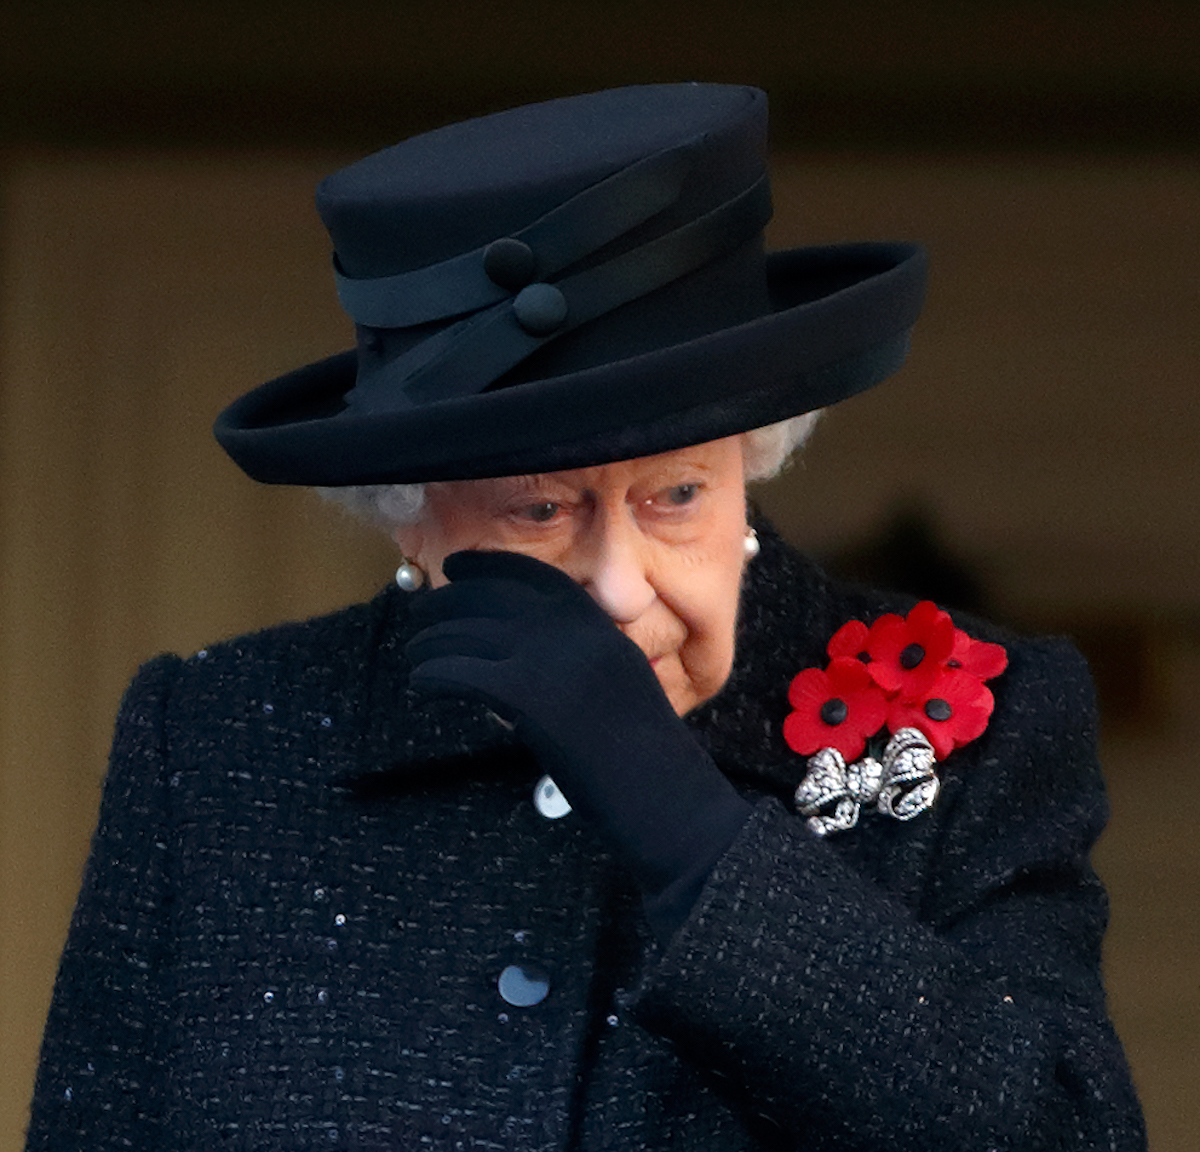 ueen Elizabeth II attends the annual Remembrance Sunday service